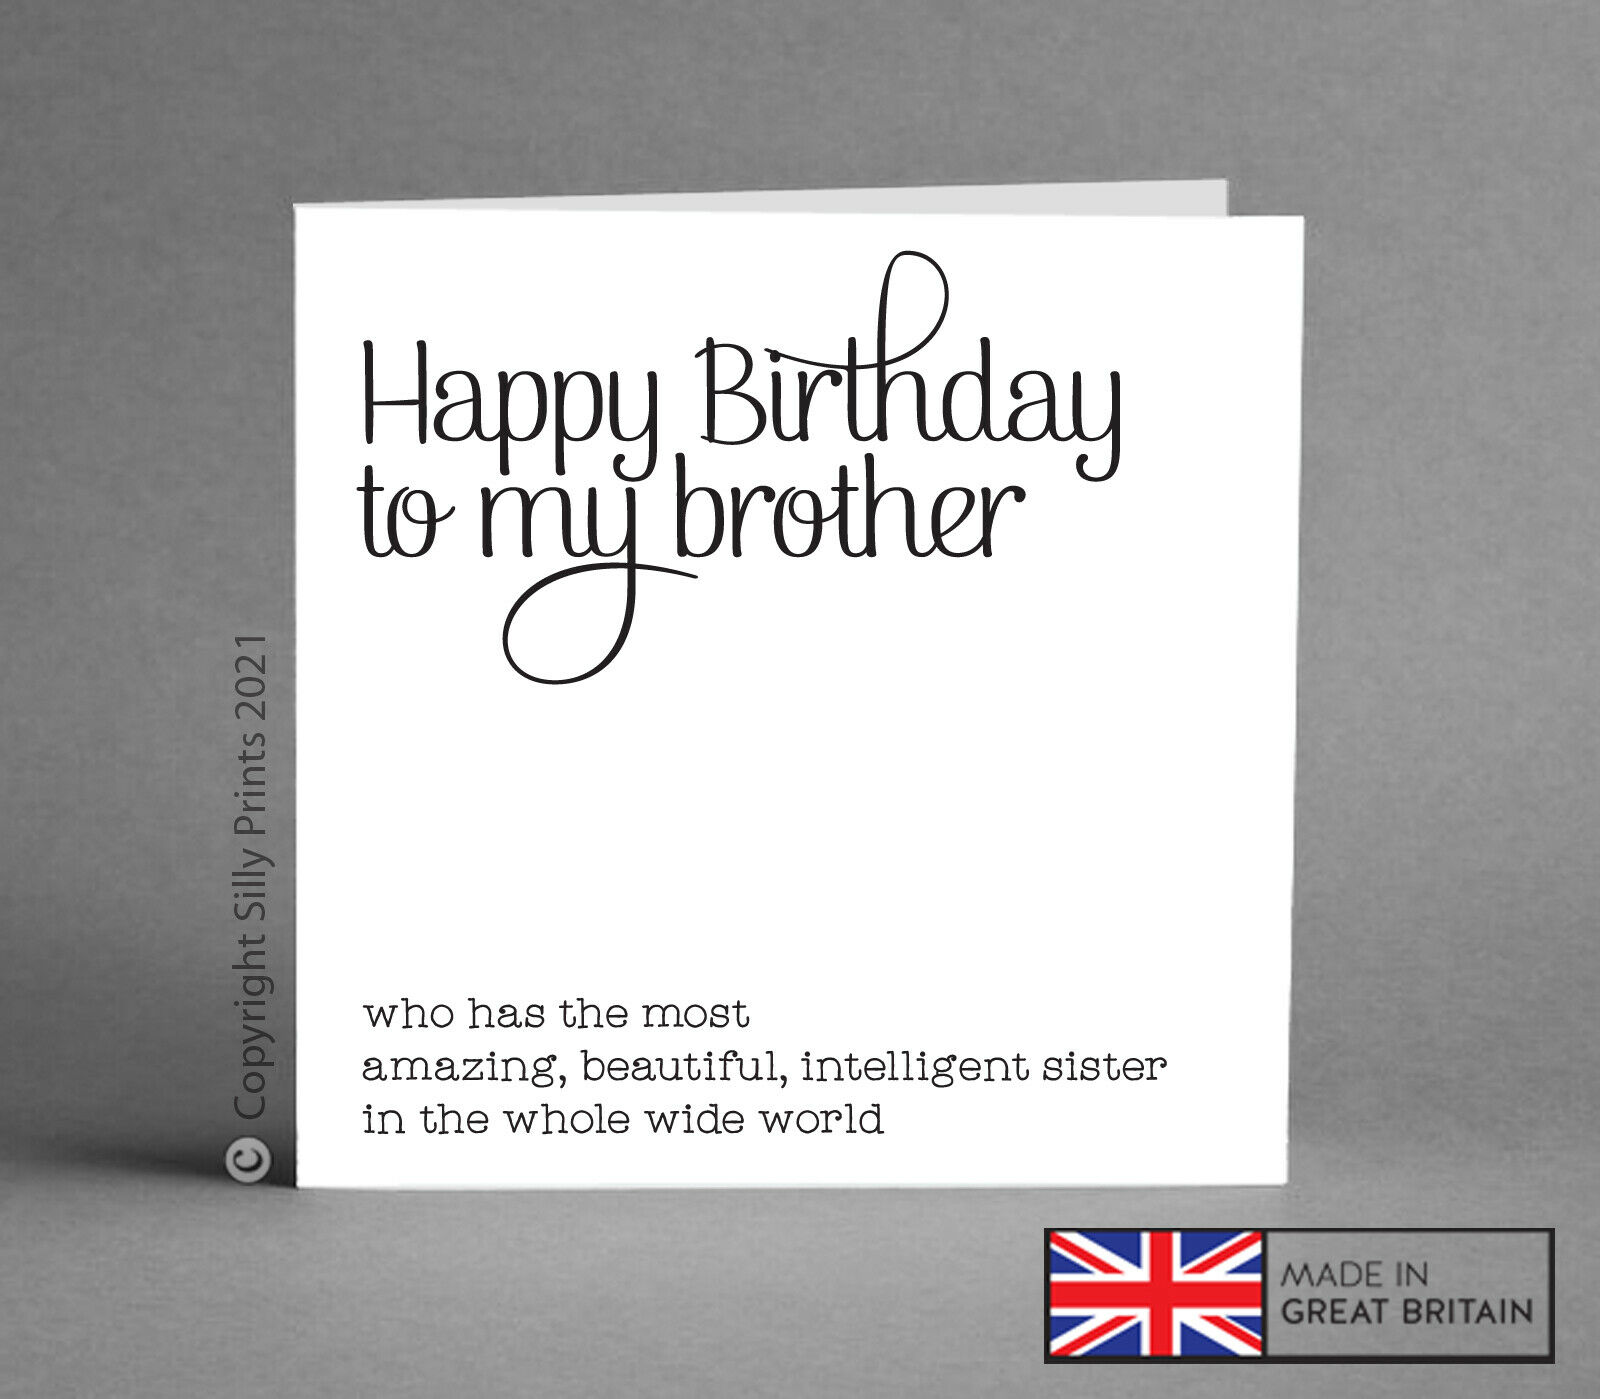 BIRTHDAY CARDS FOR Brother From Best Sister Funny Cheeky